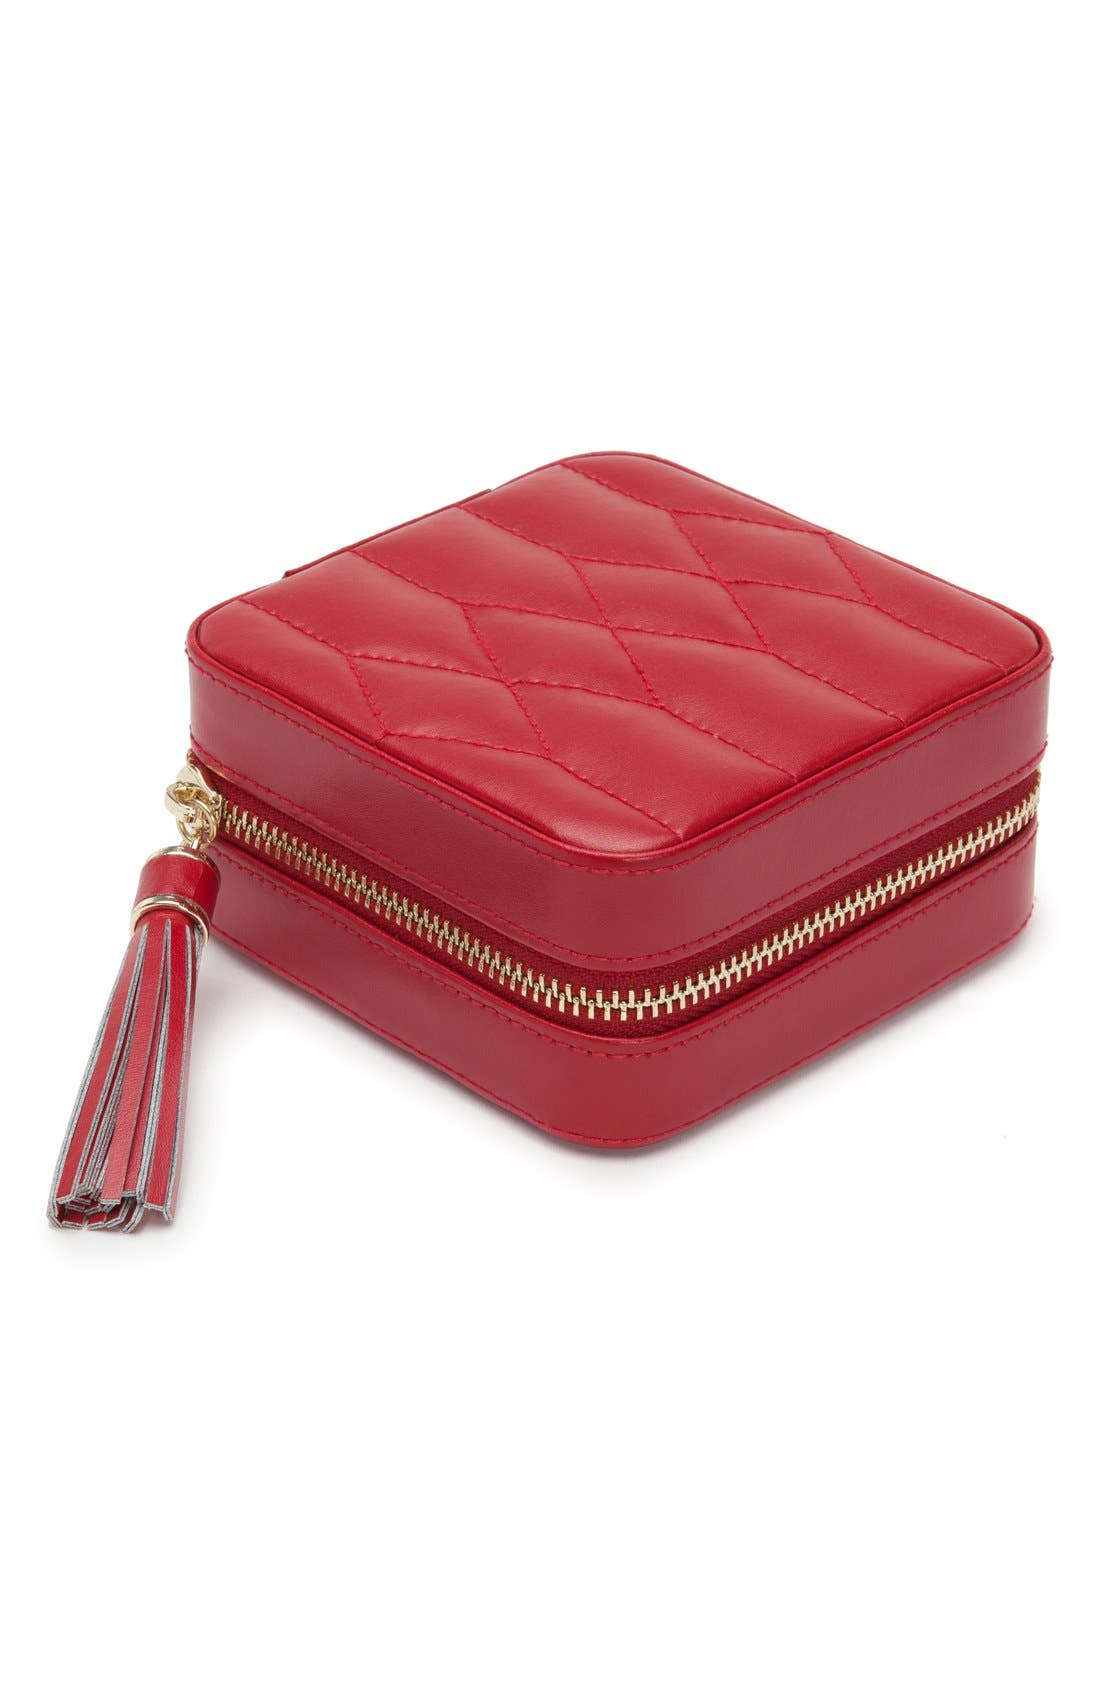 'Caroline' Travel Jewelry Case,                             Main thumbnail 1, color,                             RED